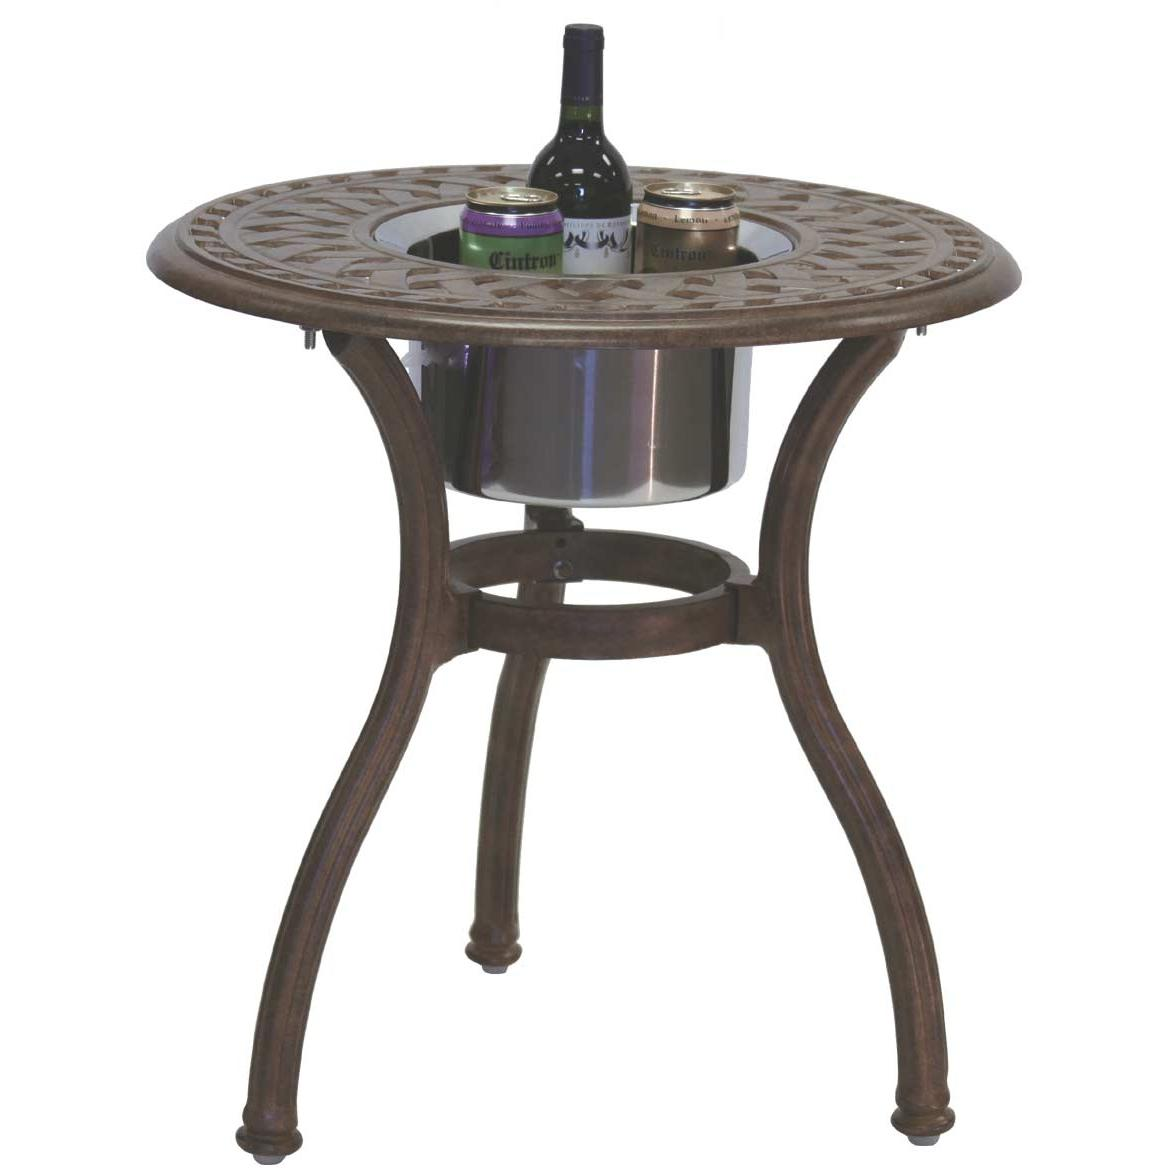 Darlee Series 60 Cast Aluminum Outdoor Patio End Table With Ice Bucket Insert - 24 Inch - Mocha